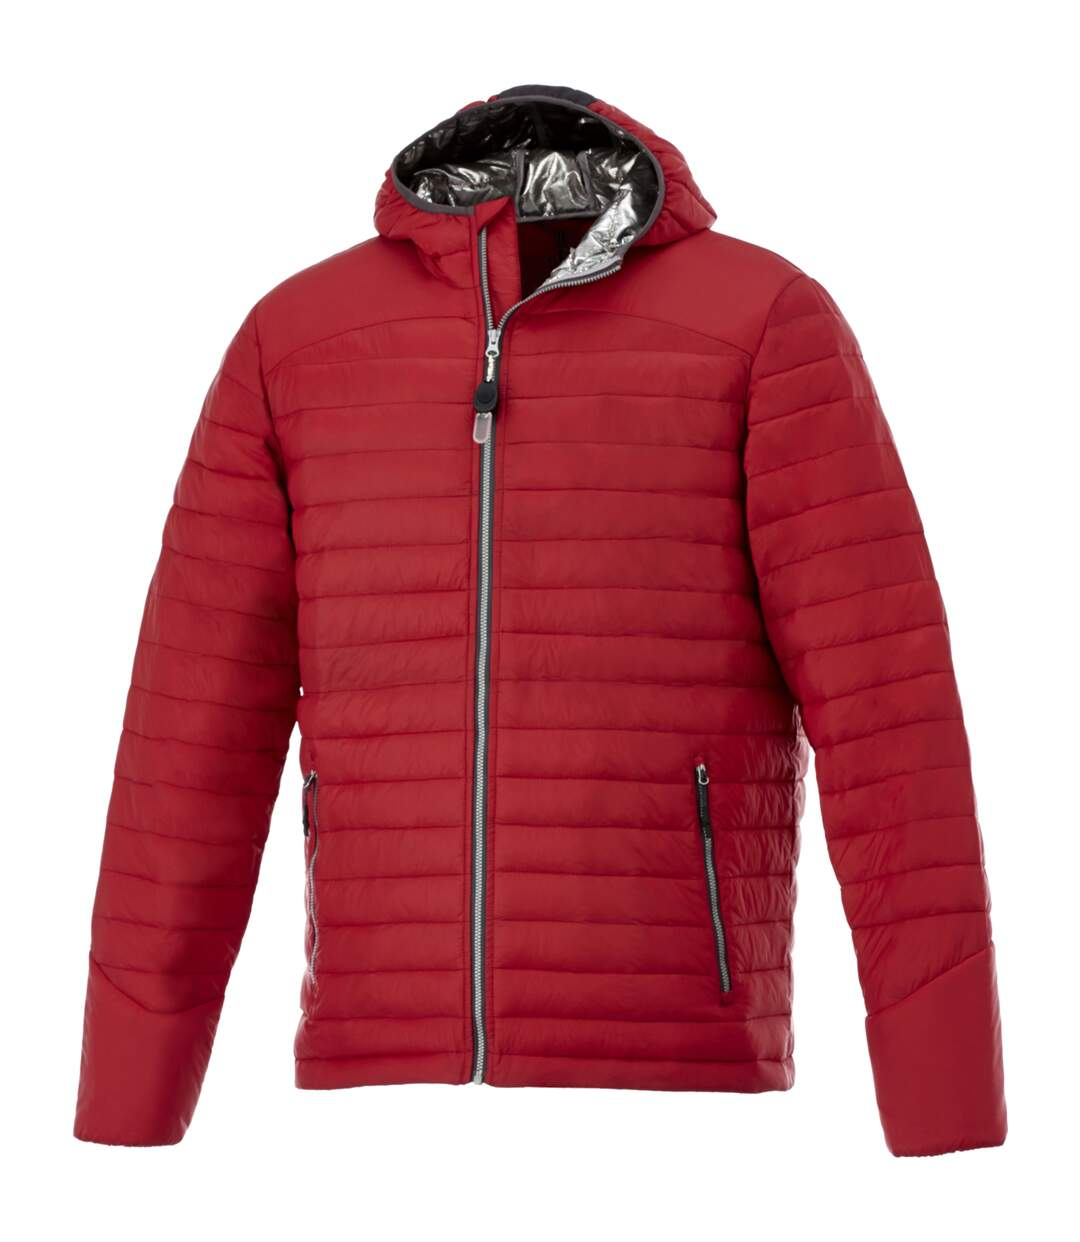 Elevate Mens Silverton Insulated Jacket (Red) - UTPF1928